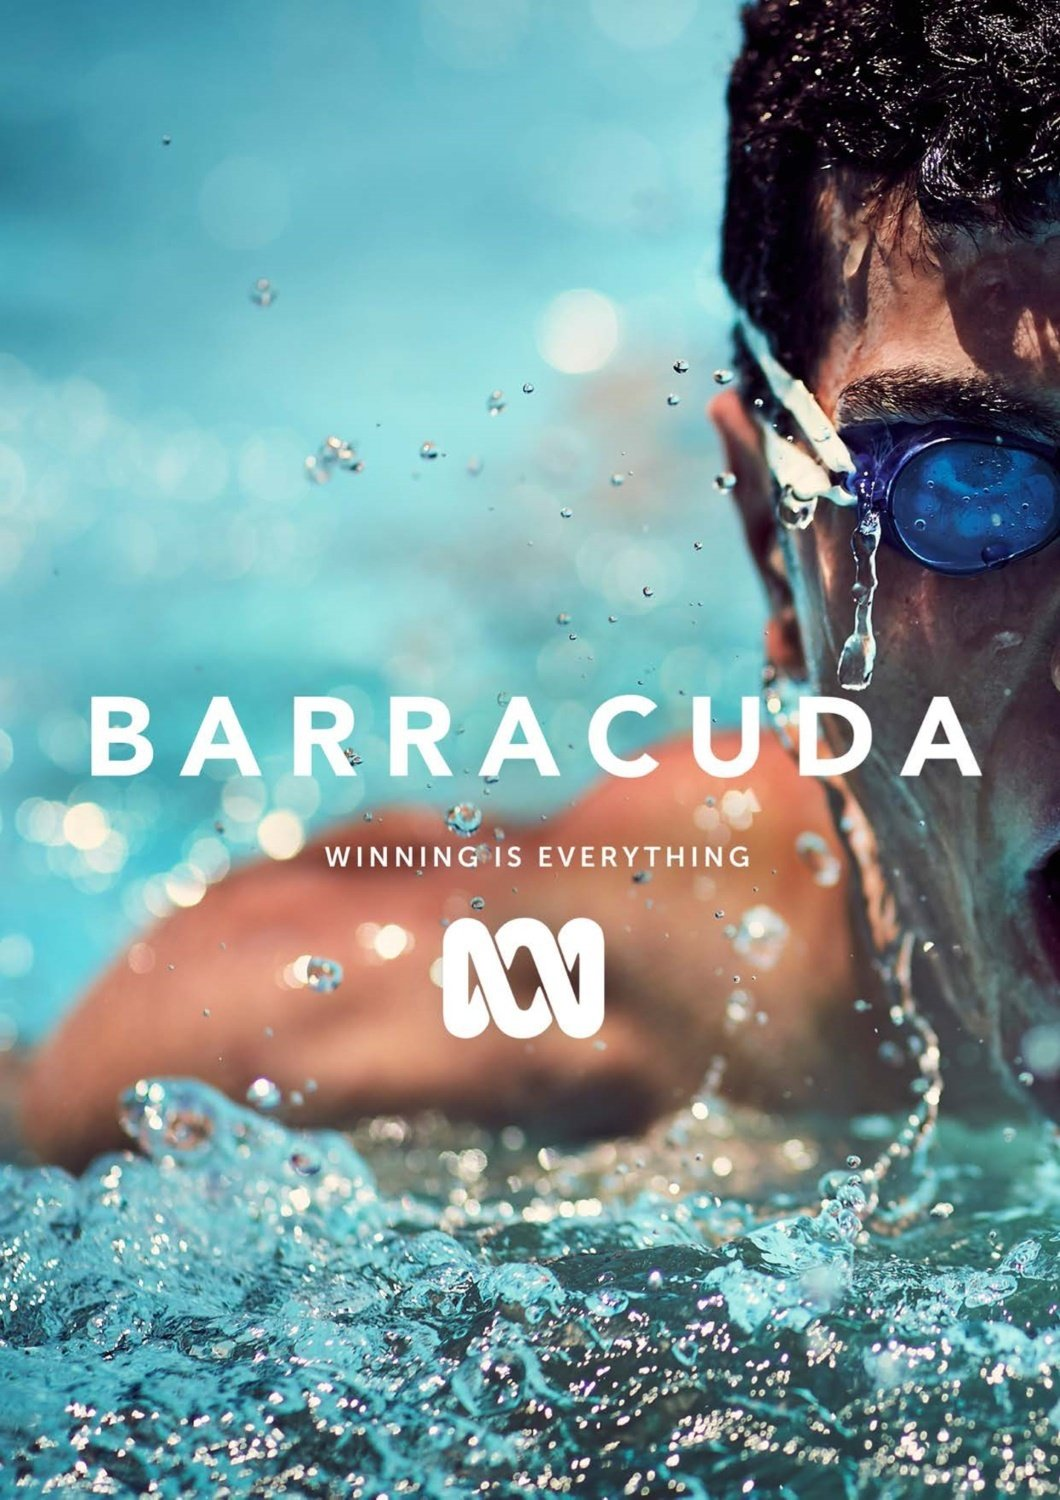 4 part series produced by Matchbox Pictures,  NBCUniversal for ABC Australia